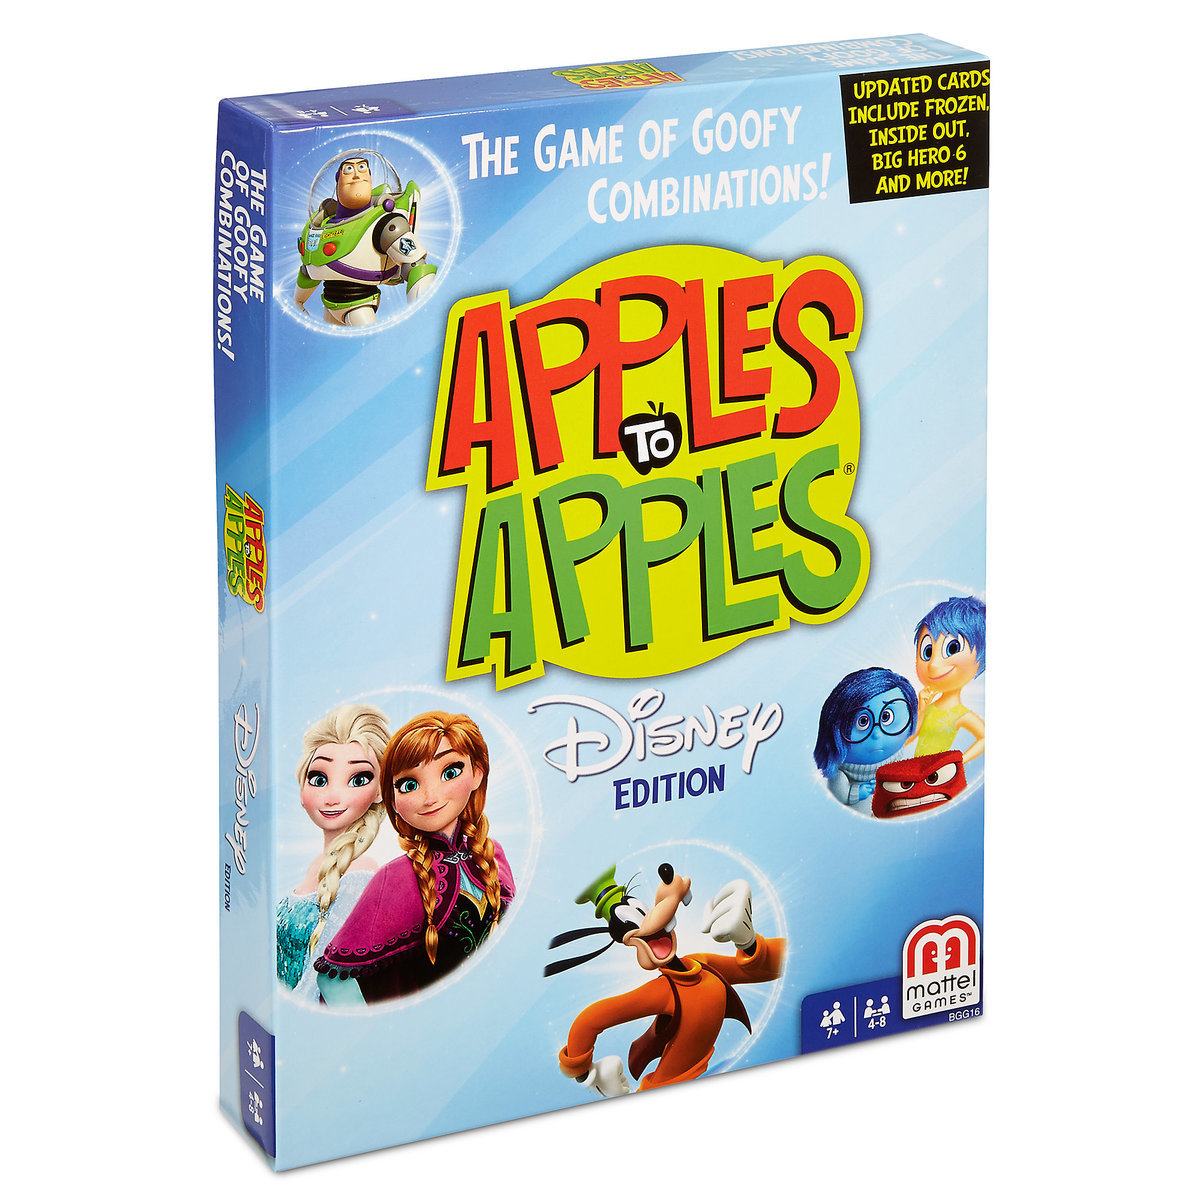 Disney Edition Apples to Apples Game